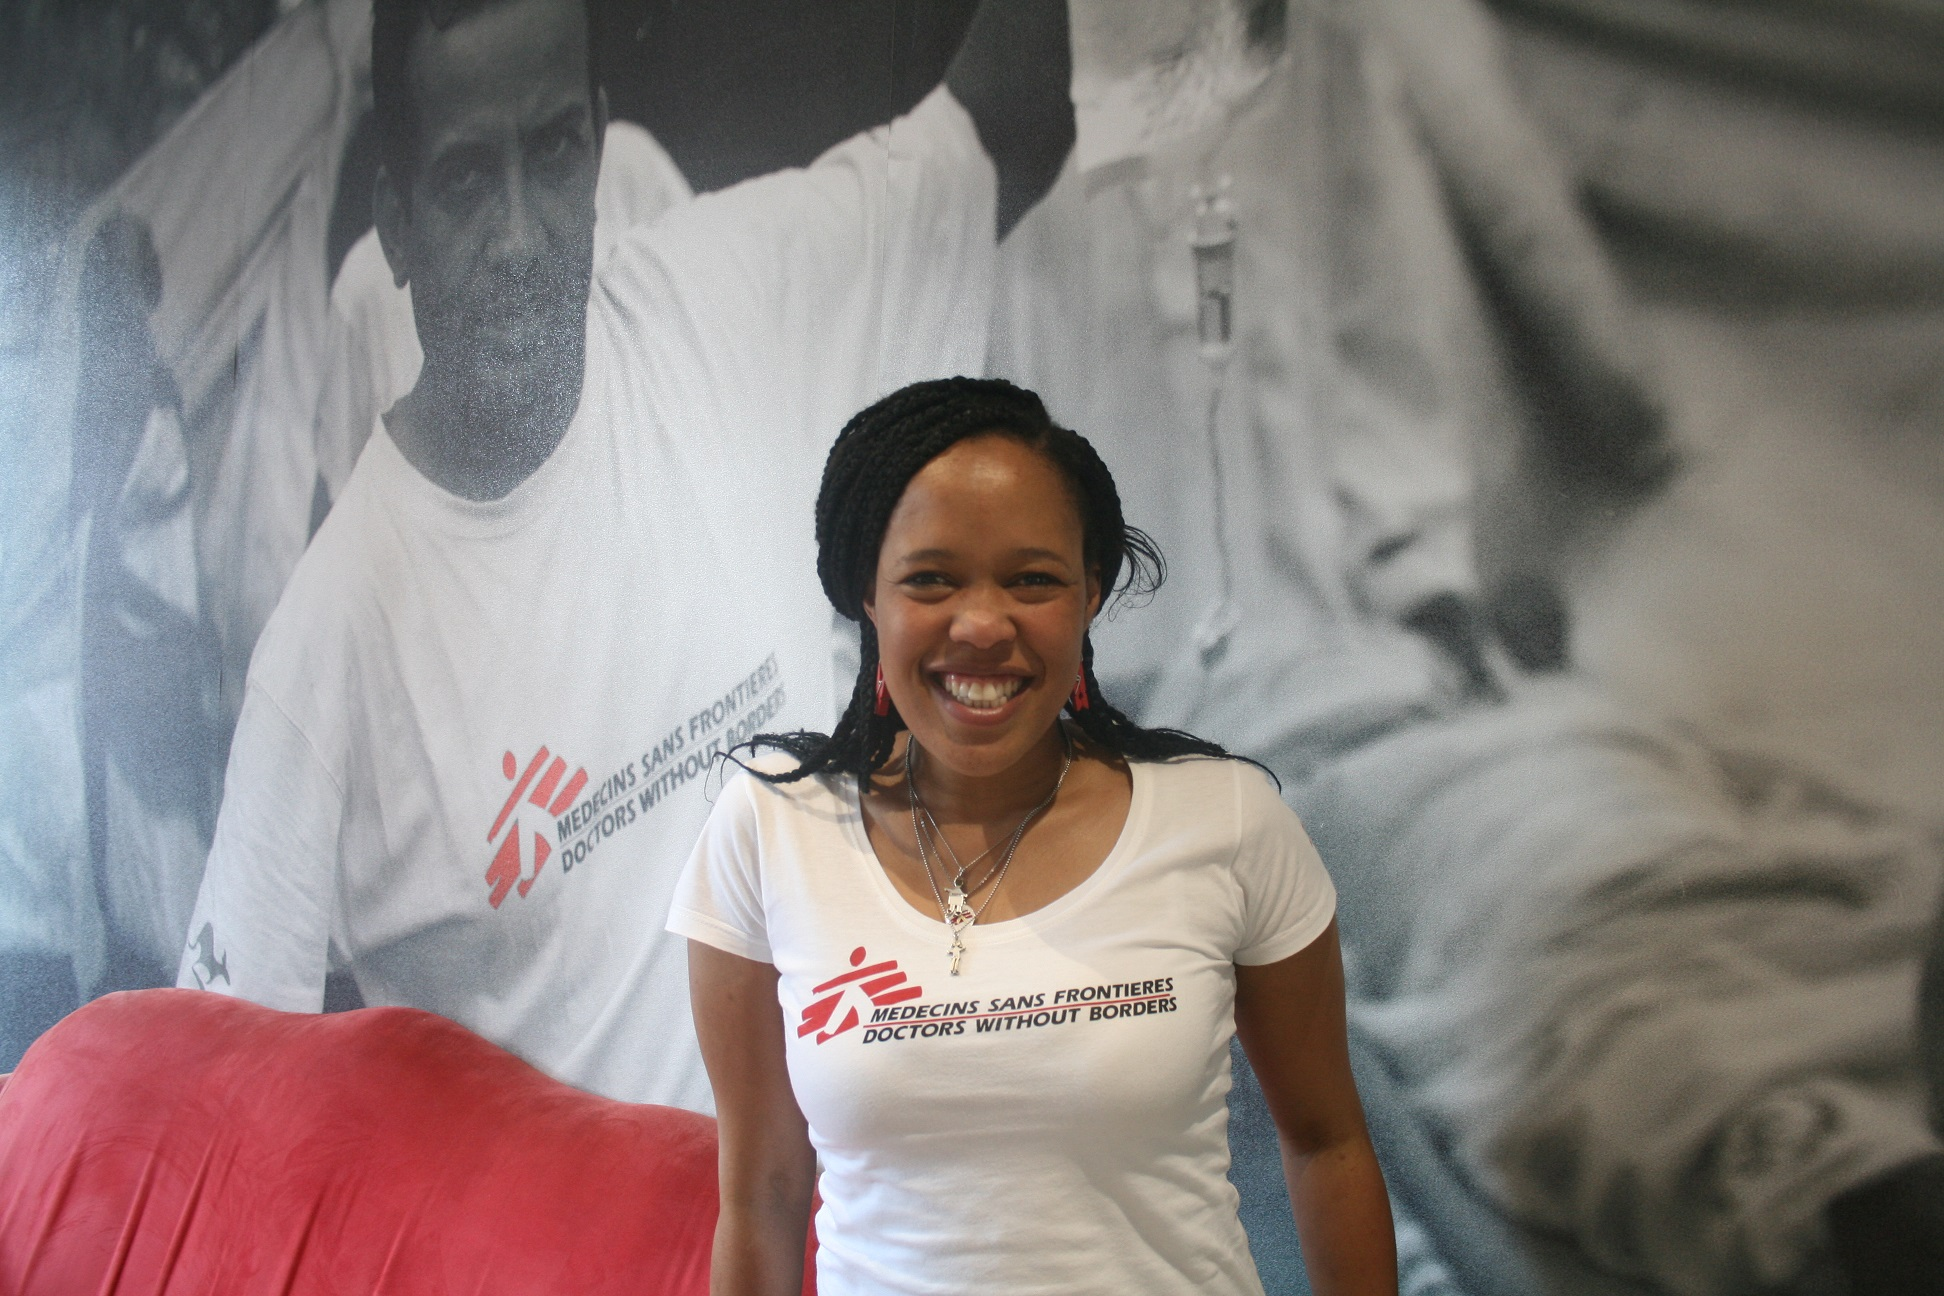 Zanele Dhludhlu Works As The Finance Director Of MSF Southern Africa And She Has Been With Organisation For Over 10 Years Worked Both In